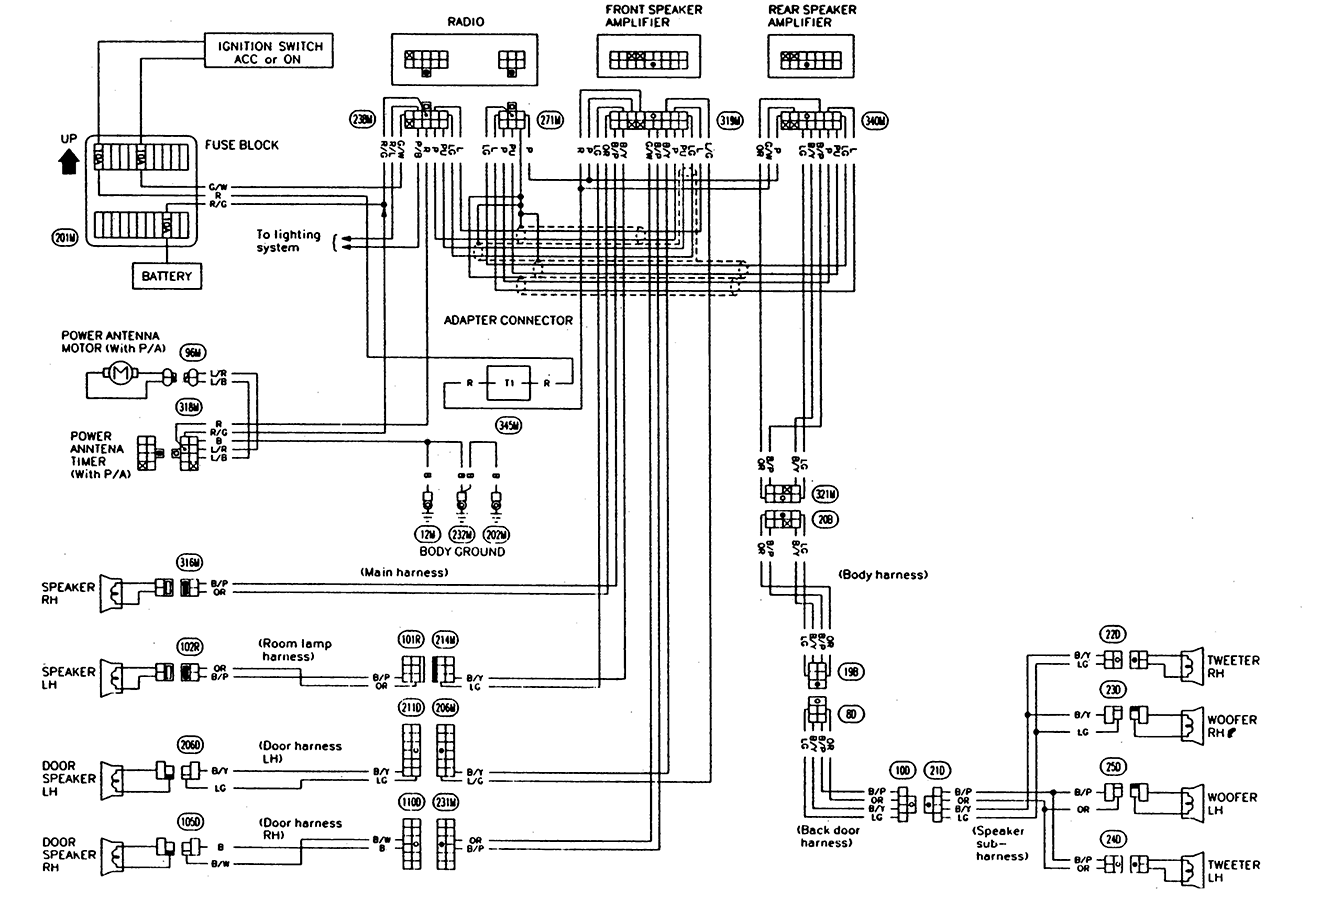 93 pathfinder factory stereo wiring diagram